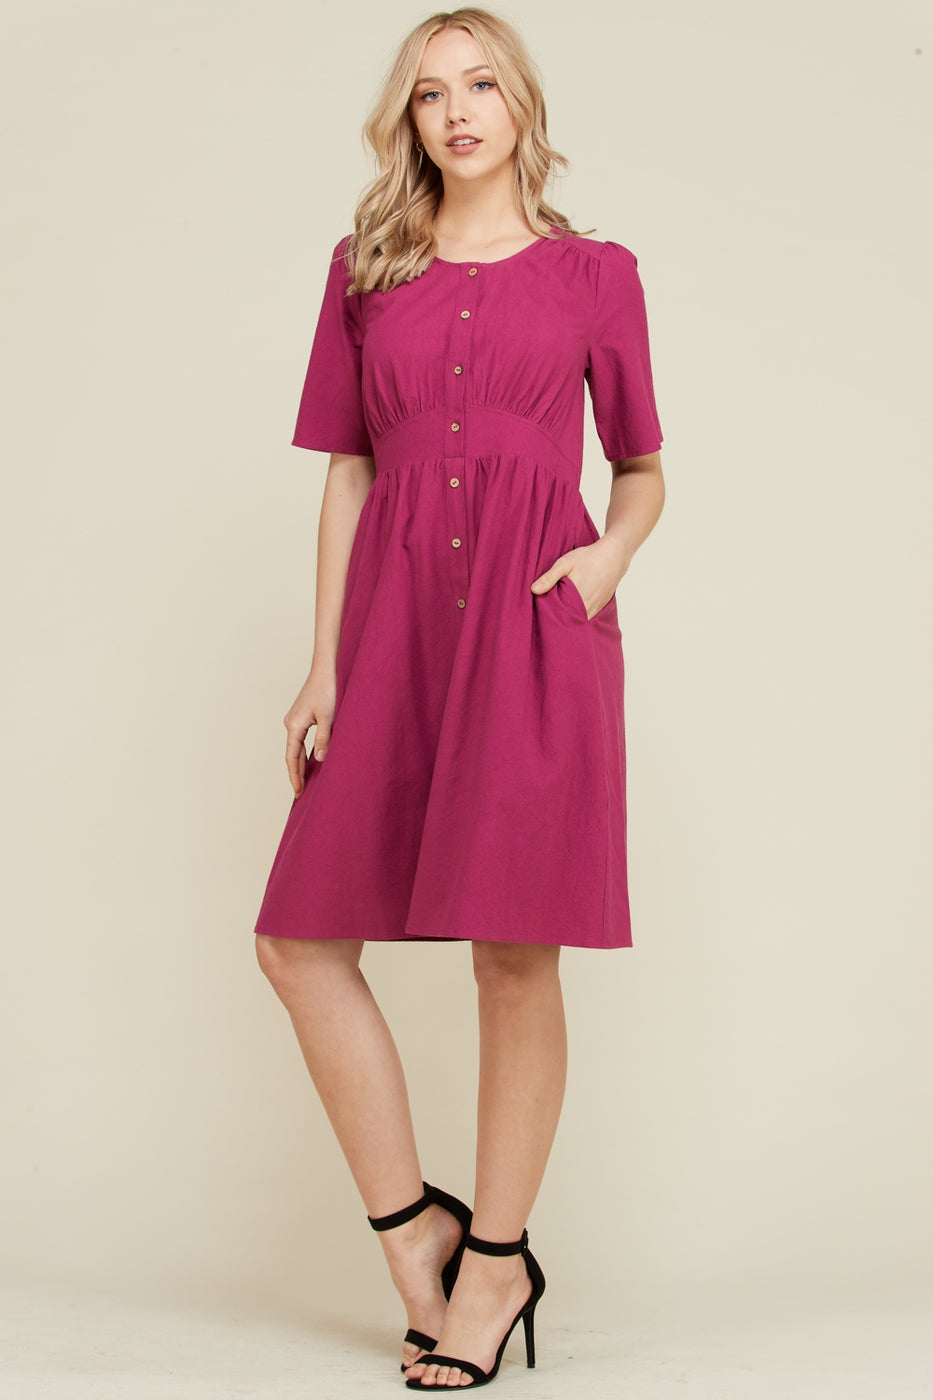 Charming Plum Short Sleeve Dress Front Placket Siin Bees